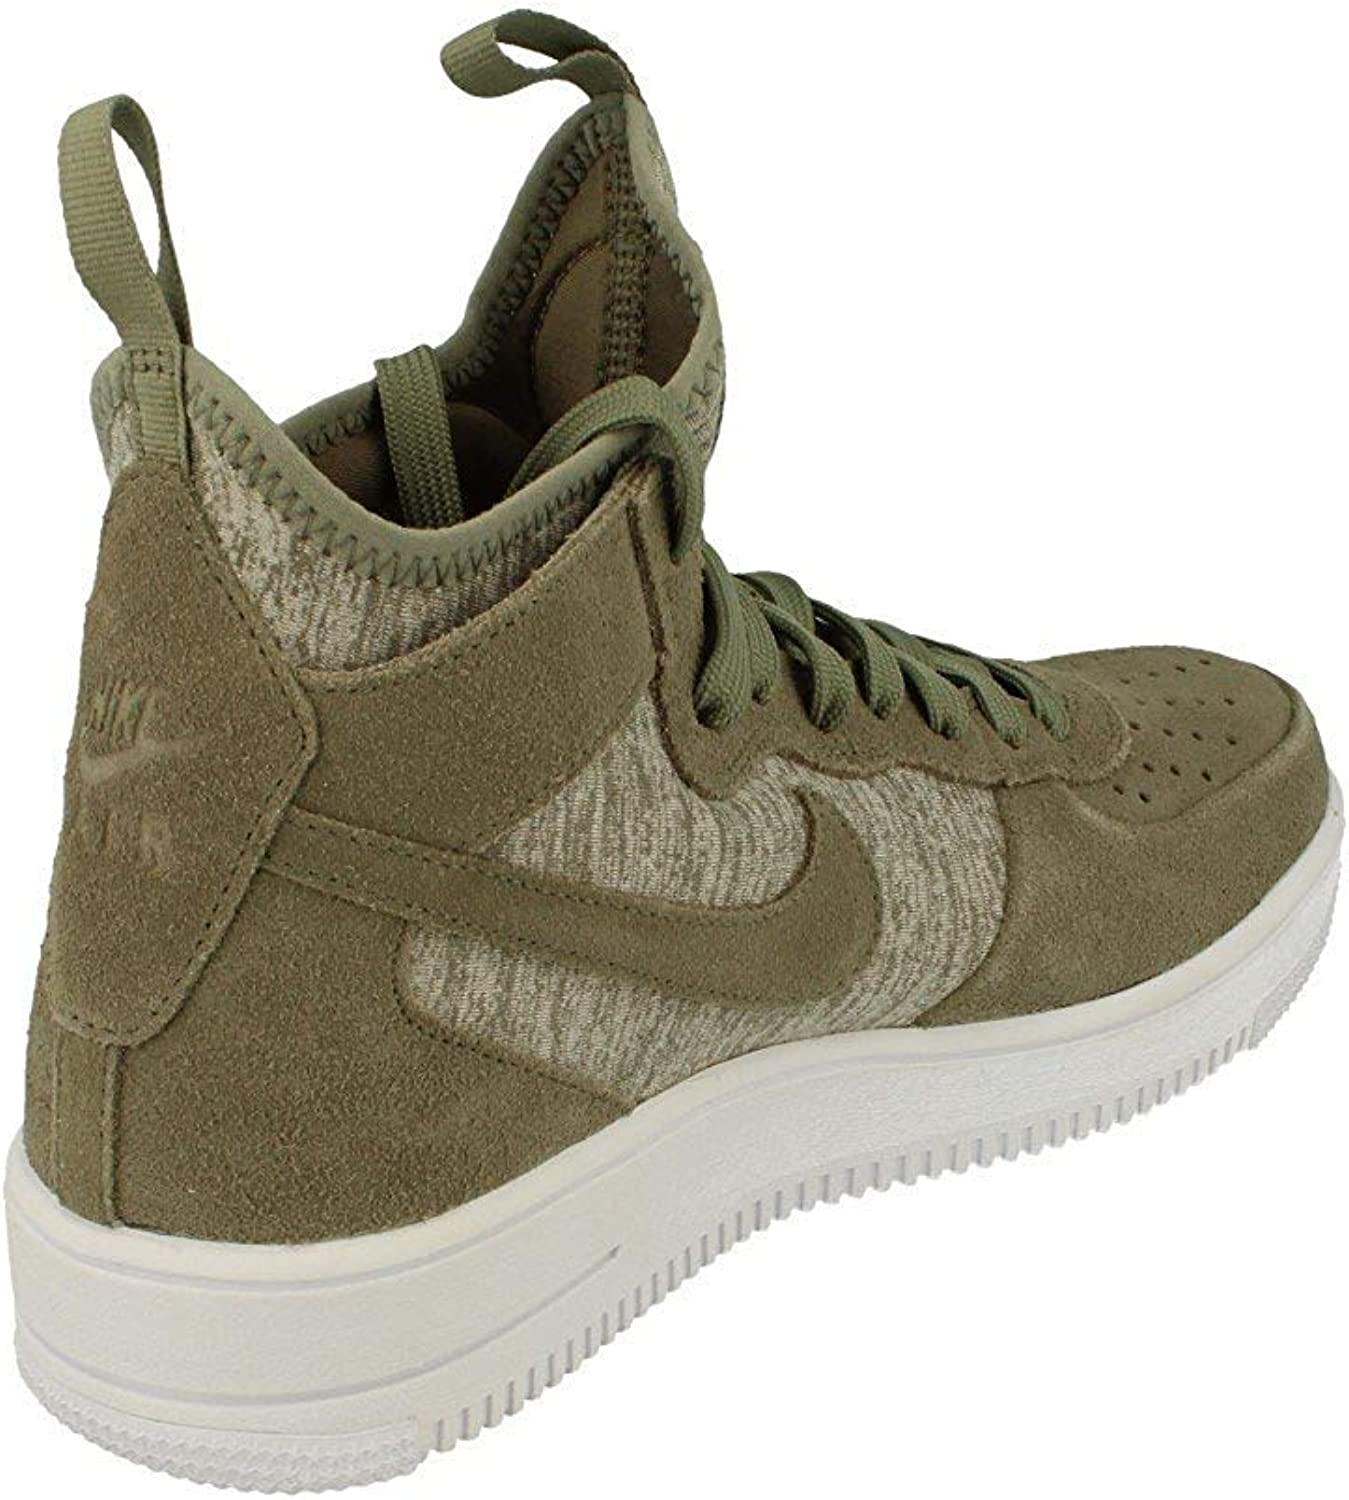 Nike Air Force 1 Ultraforce Mid PRM 921126 Baskets Montantes